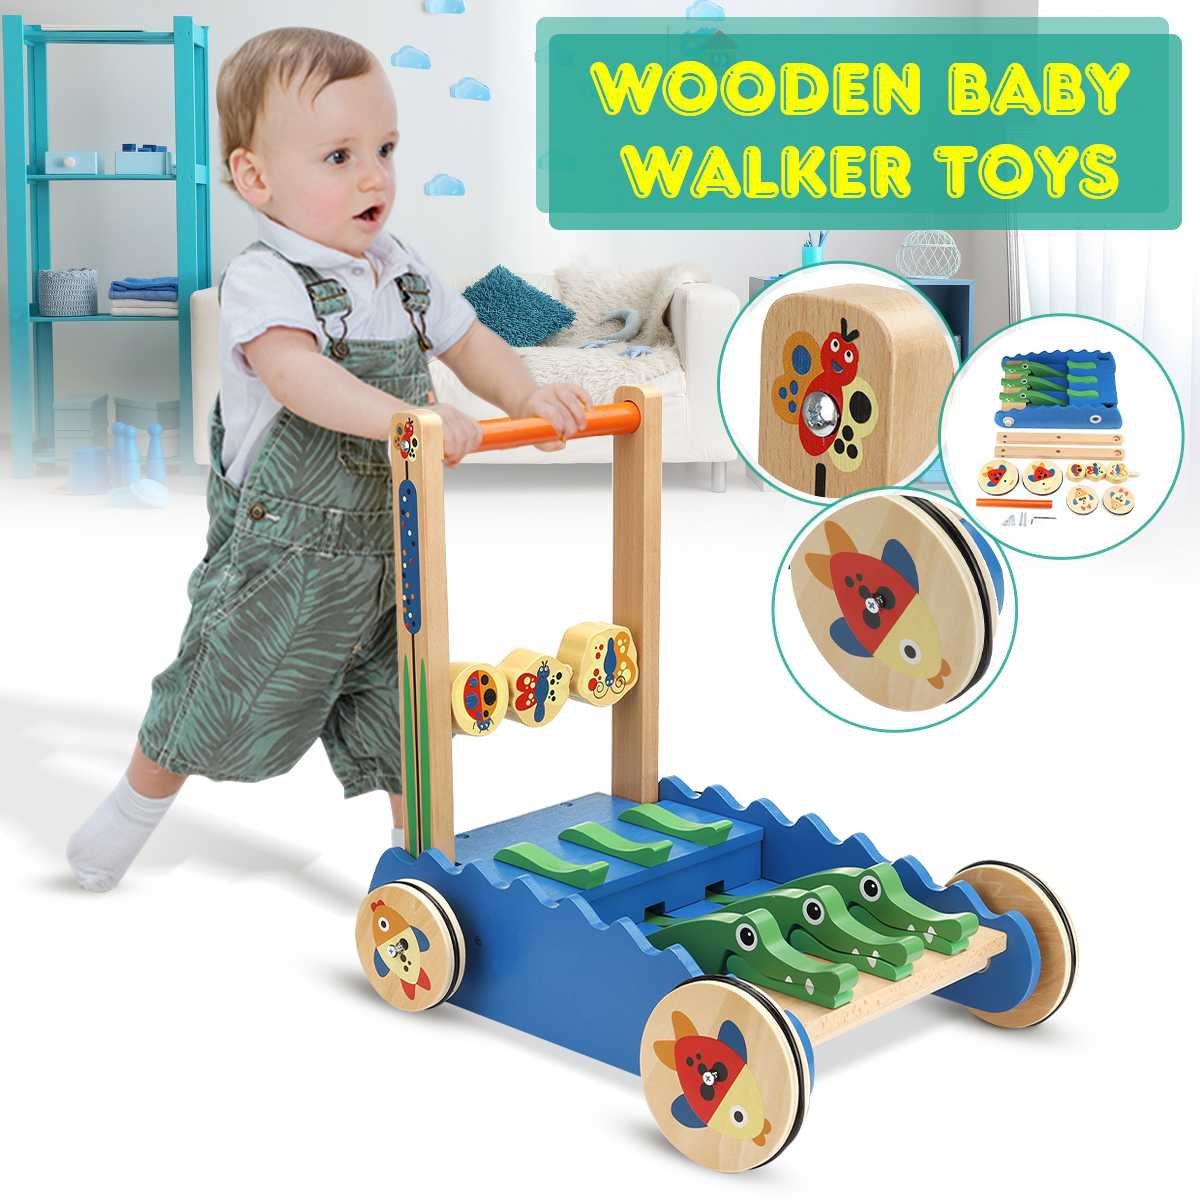 NEW Baby Walker Multifuctional Toddler Walker Sit-to-Stand Learning Walker Toys Activity Walker Birthday gift Toys for Baby Kids